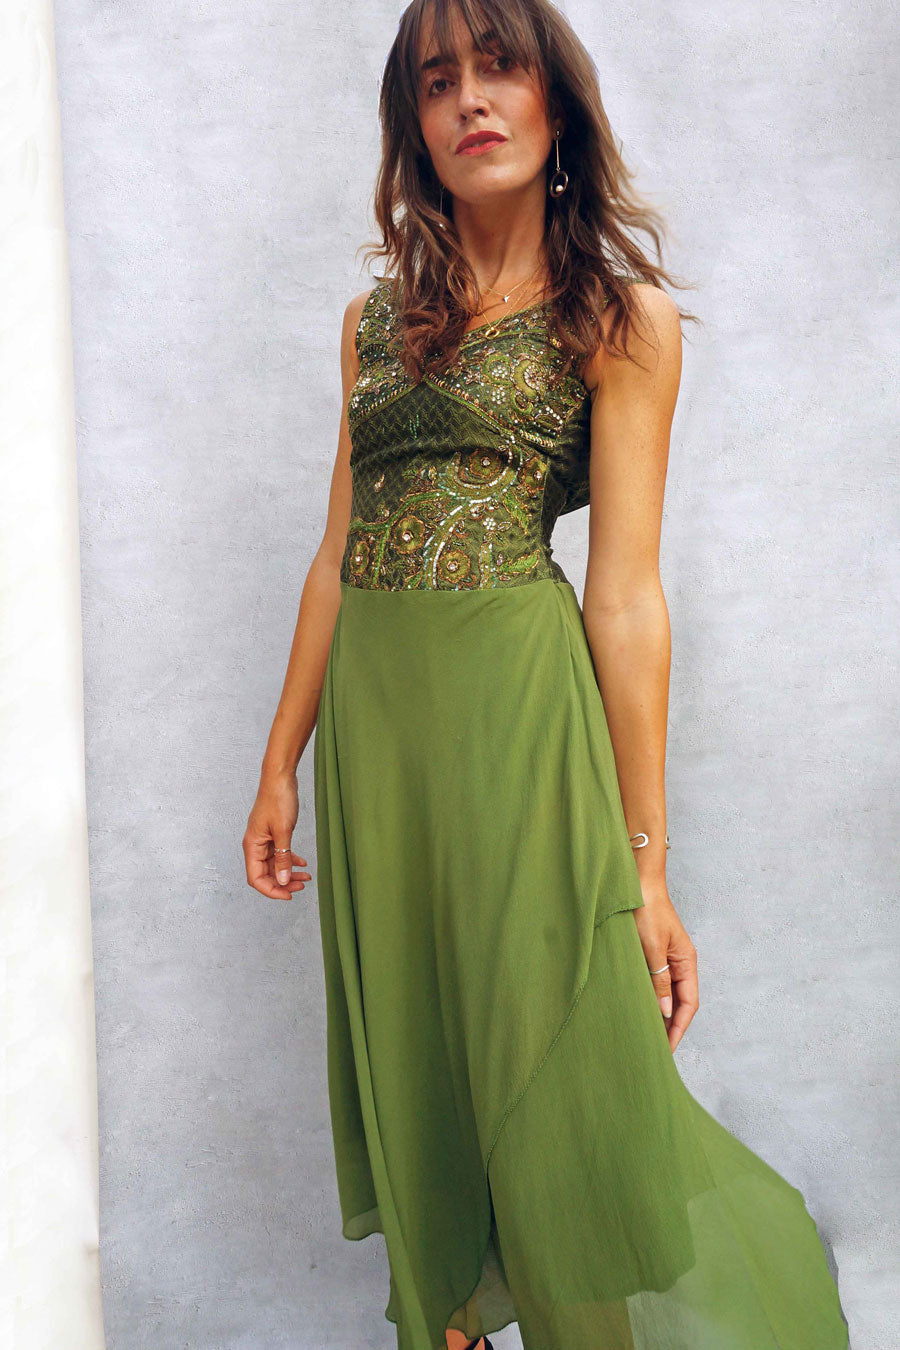 Vintage 90s Floor Length Olive Green Beaded Evening Dress - Ada's Attic Vintage -